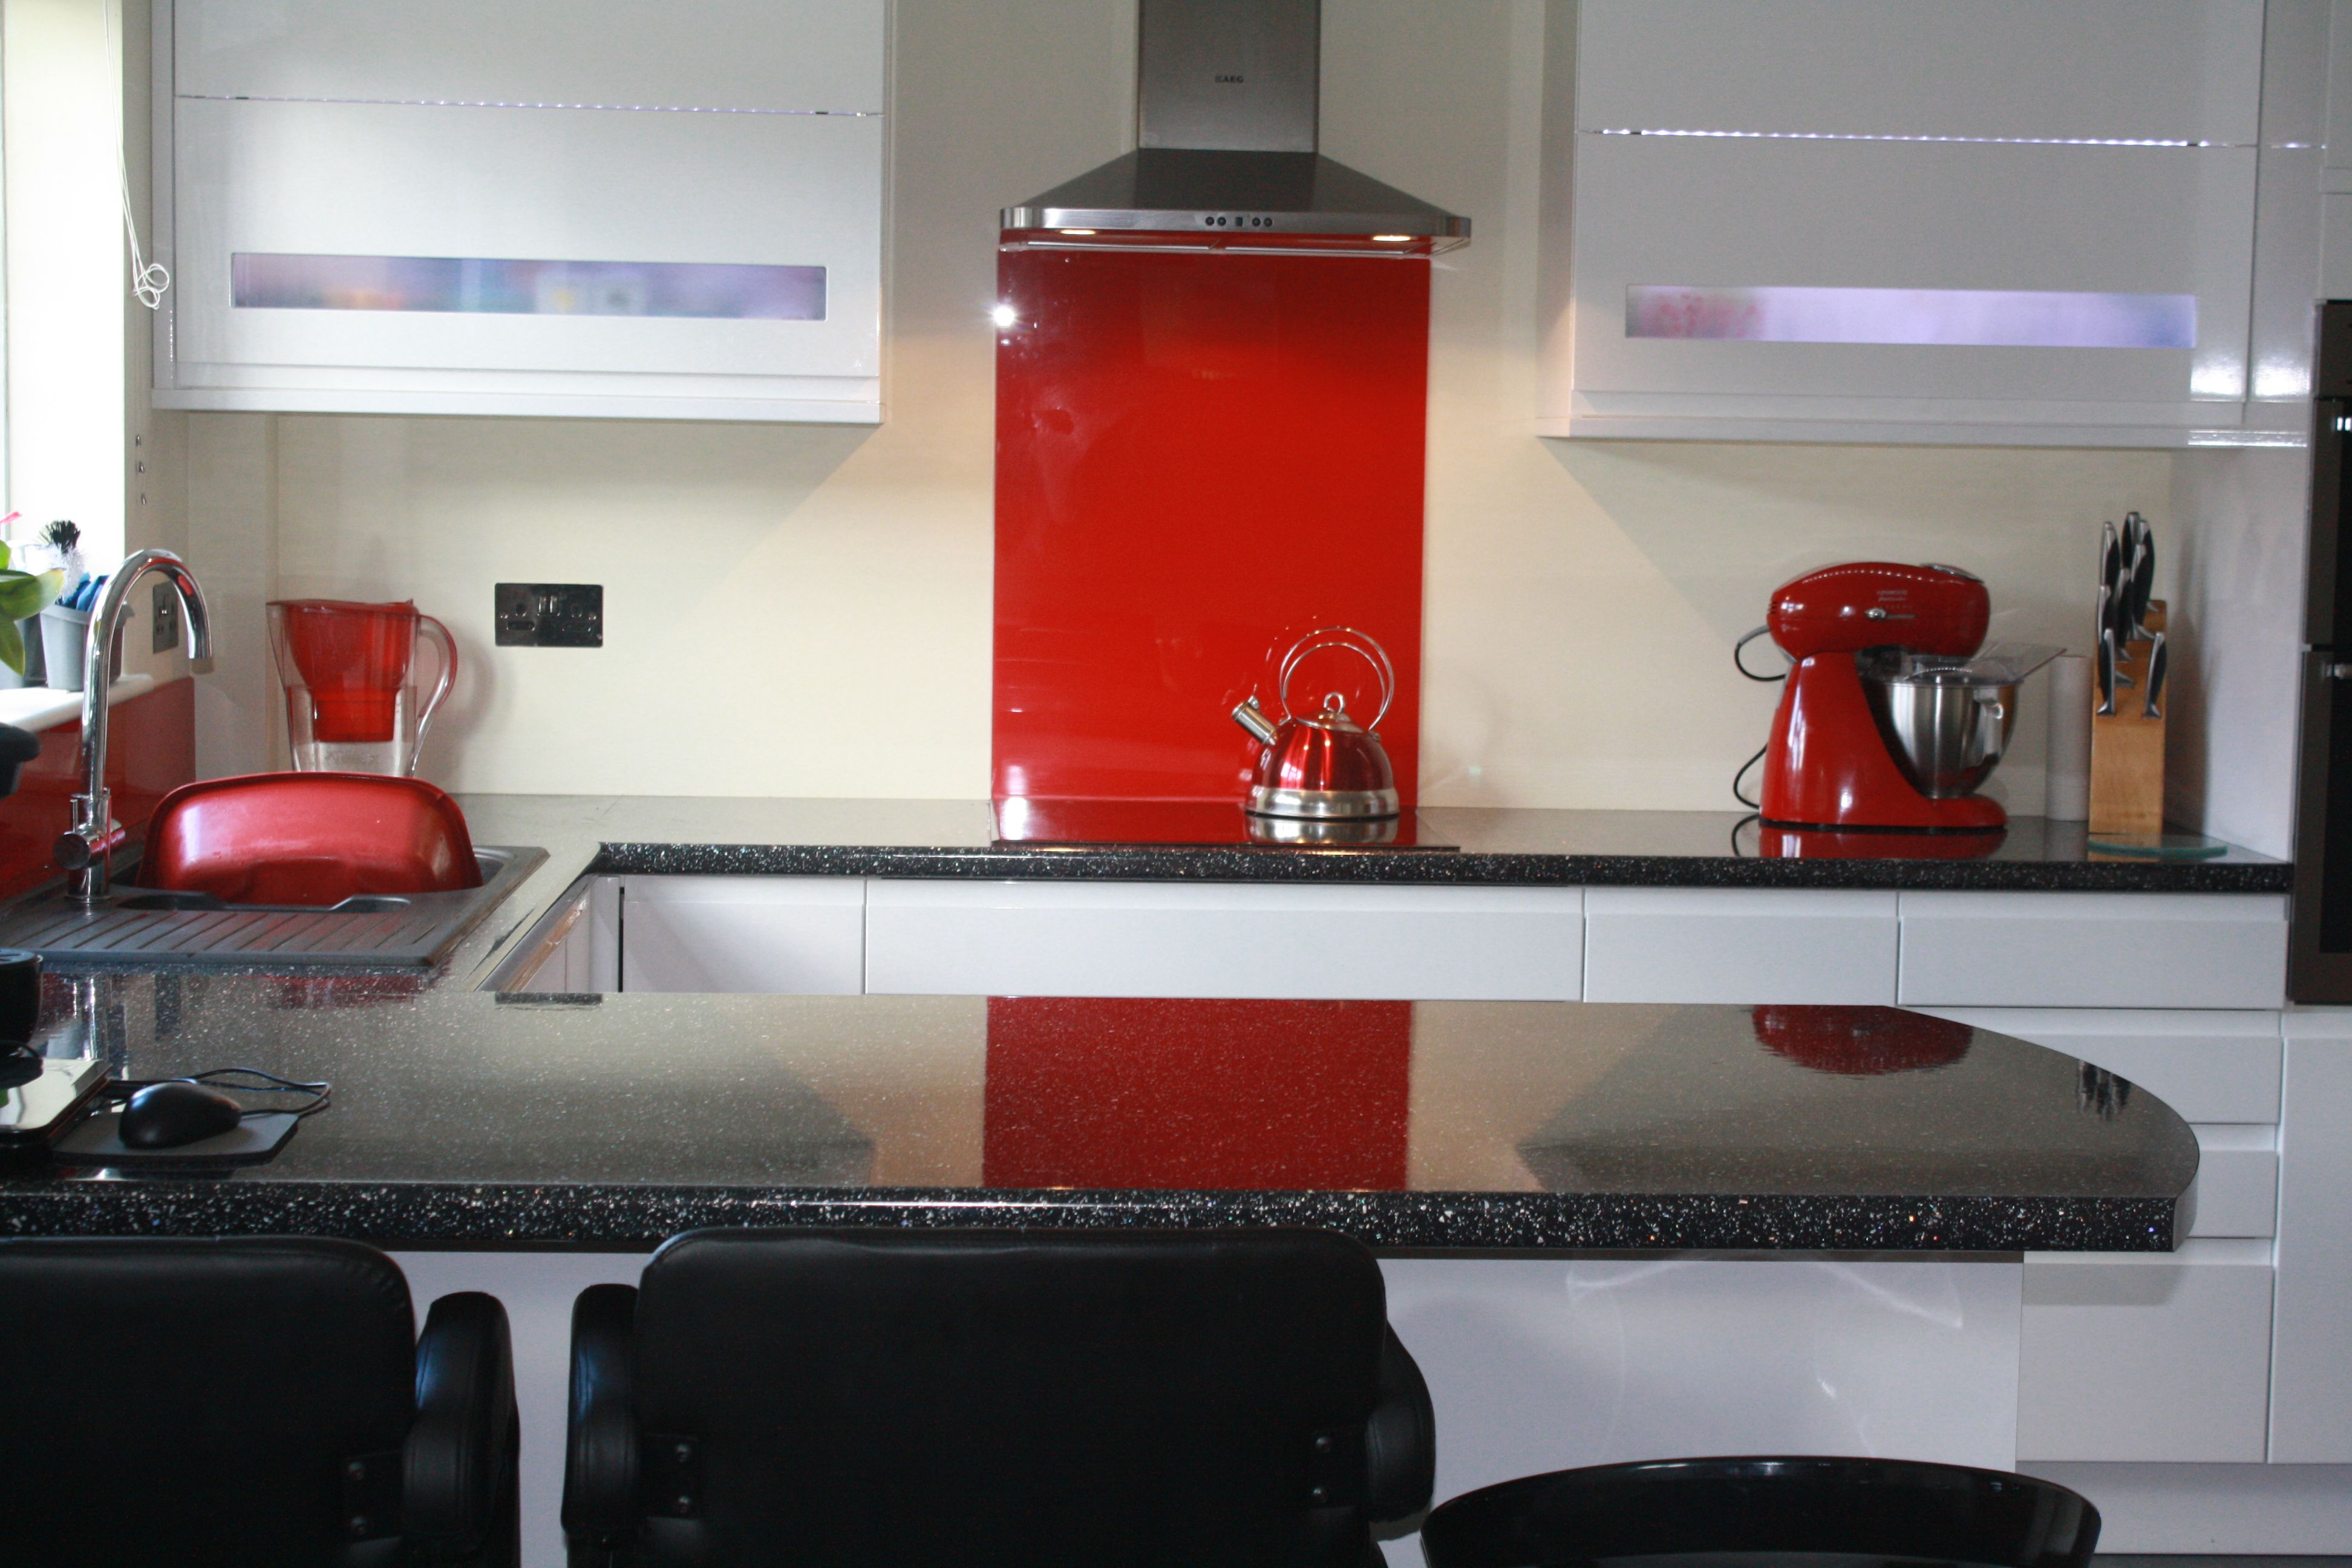 high gloss acrylic kitchen cabinets traditional furniture a bright red splashback with